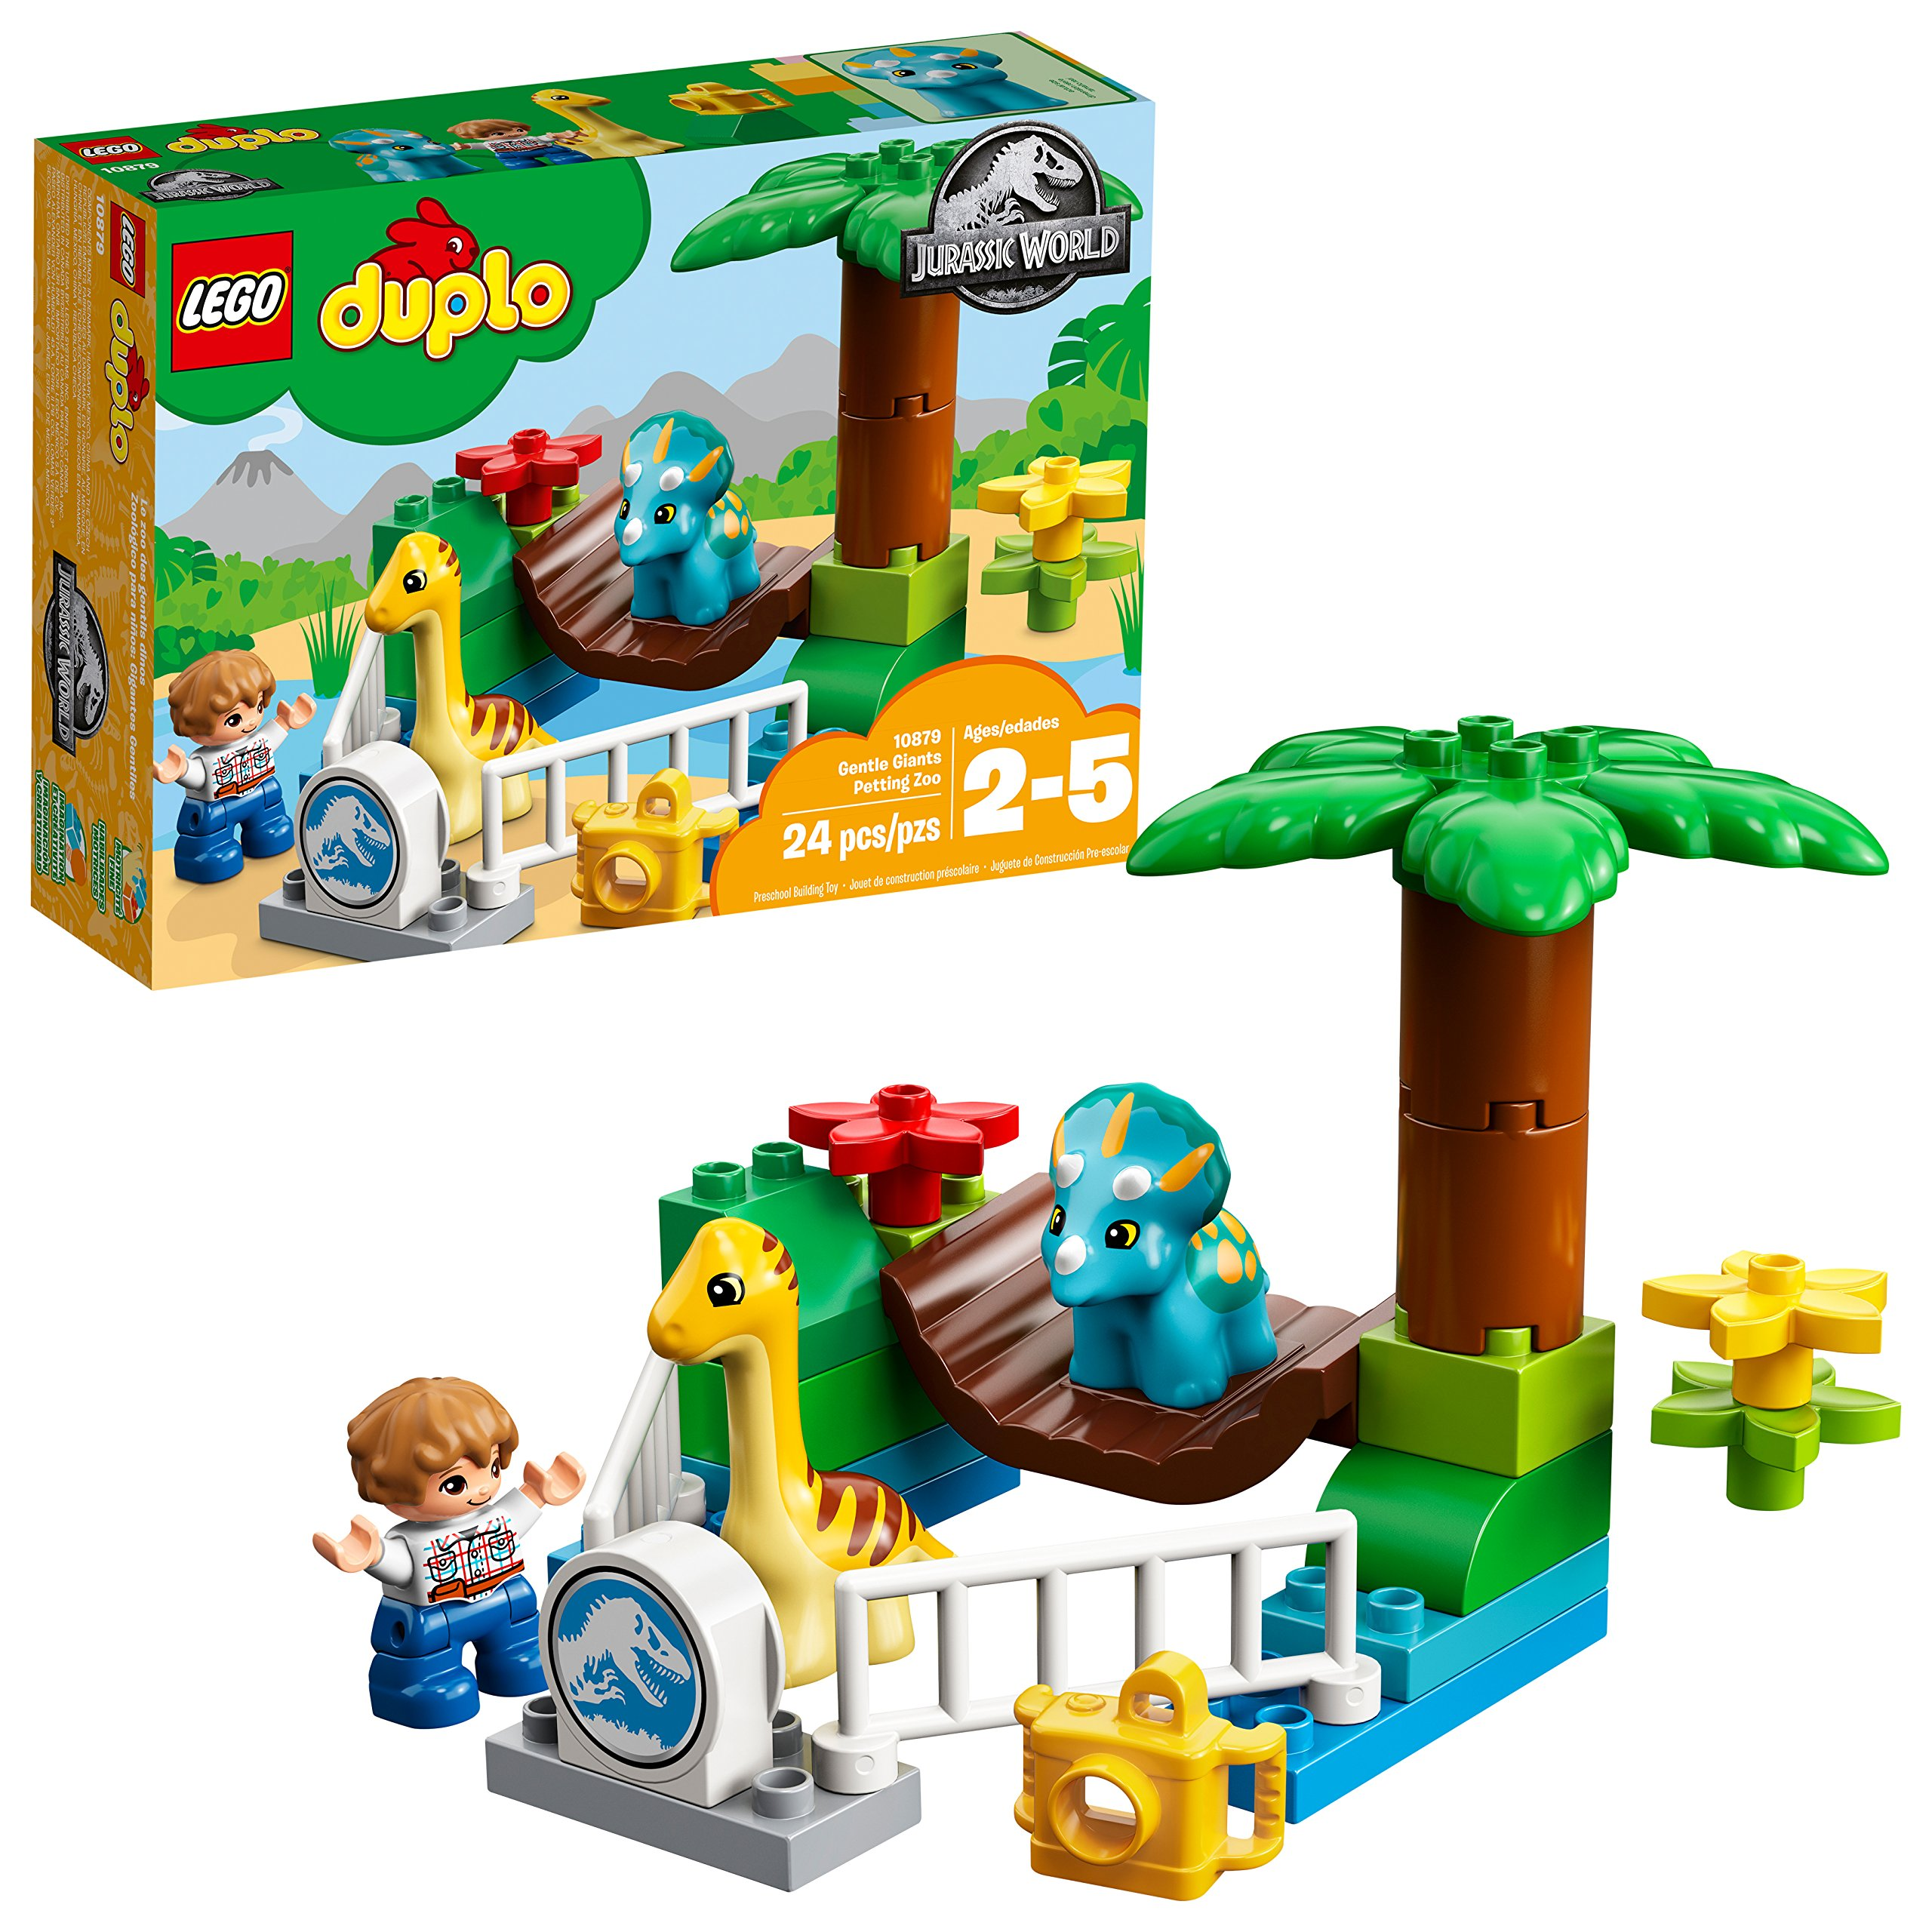 Lego Duplo Jurassic World Gentle Giants Tiendamiacom